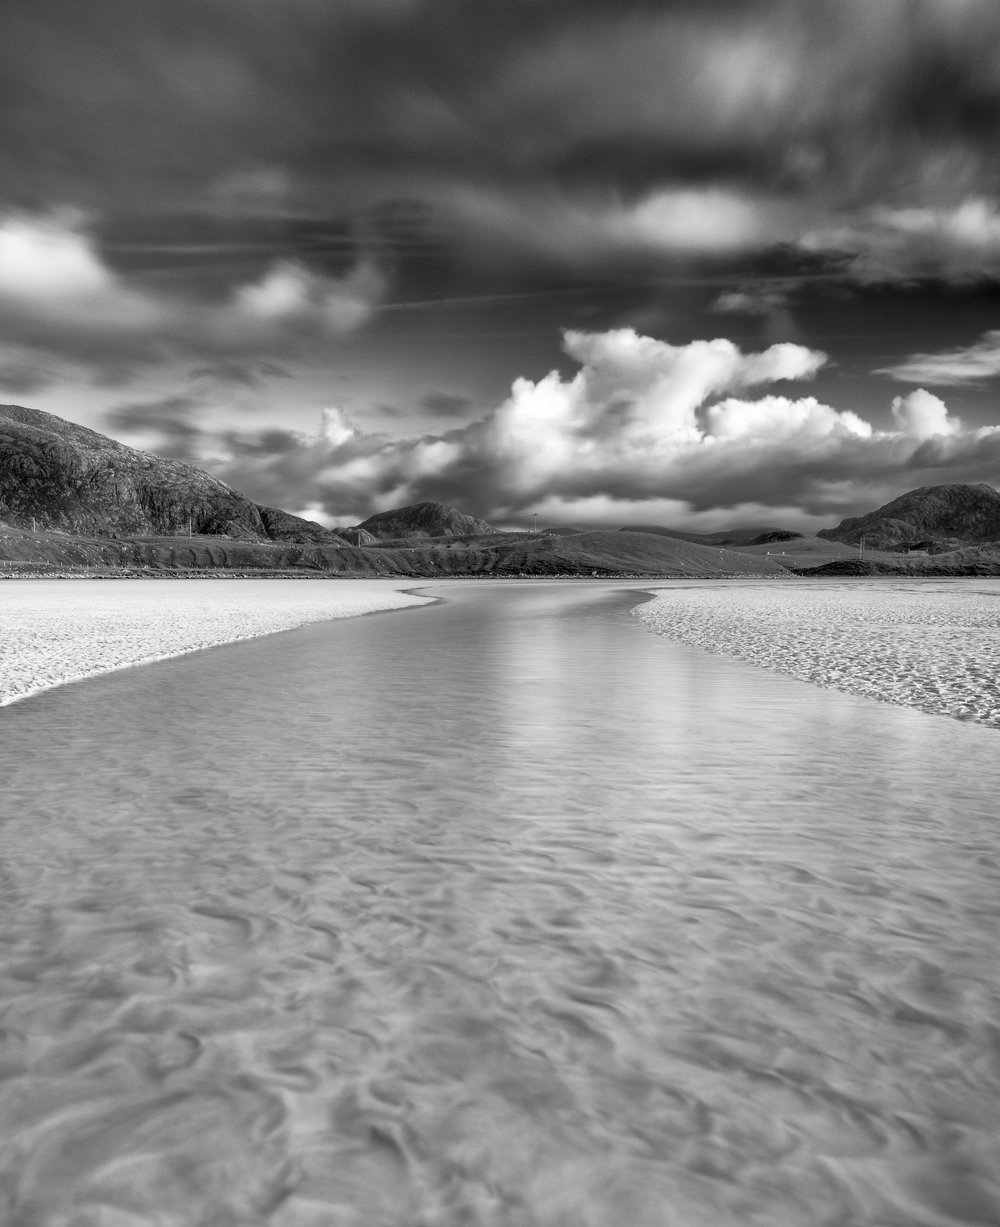 Winding water on the white sands of Uig Beach, Lewis.